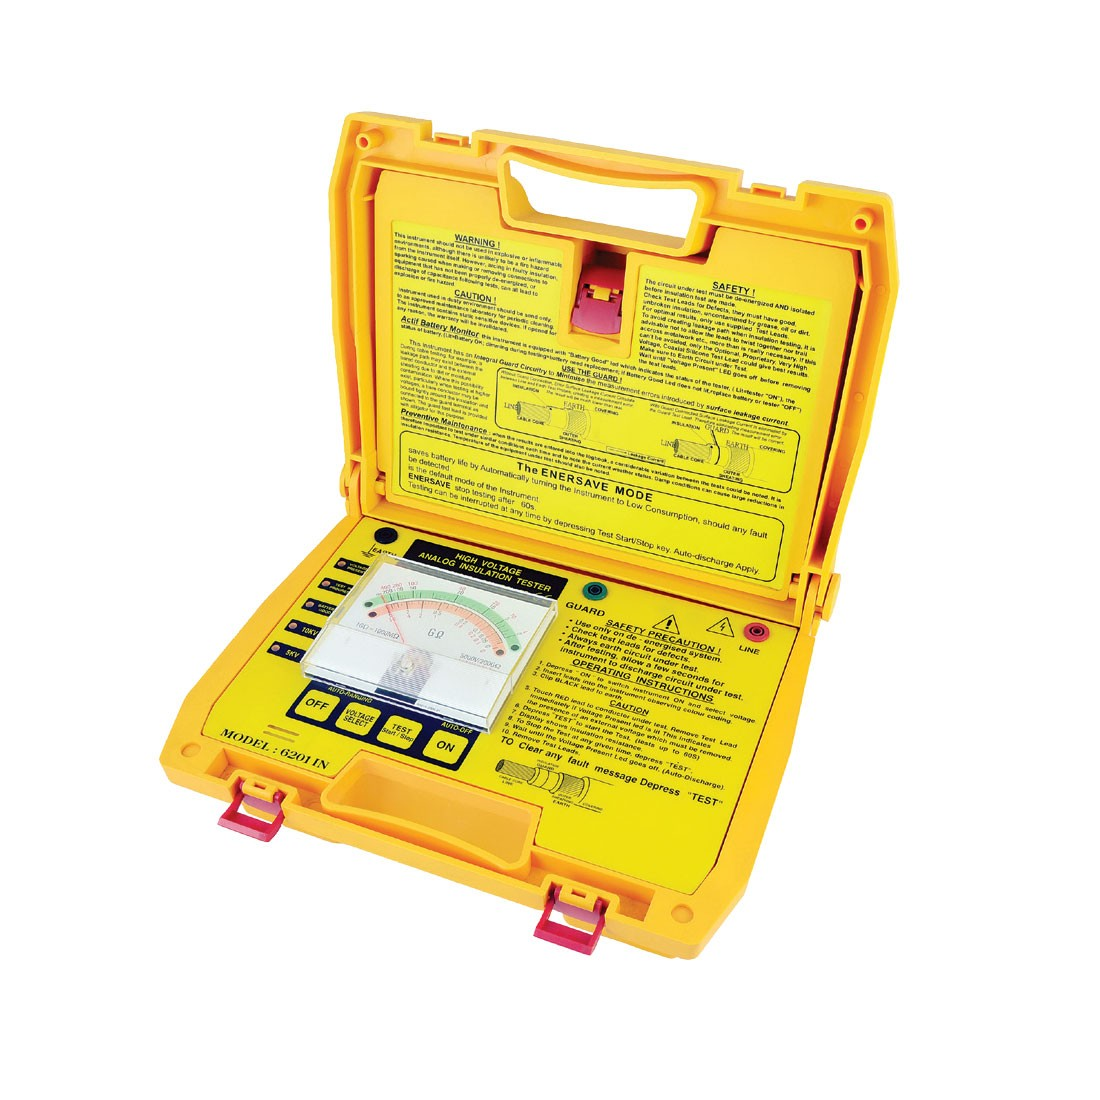 6201IN Analogue (Up to 10kV) Insulation Tester